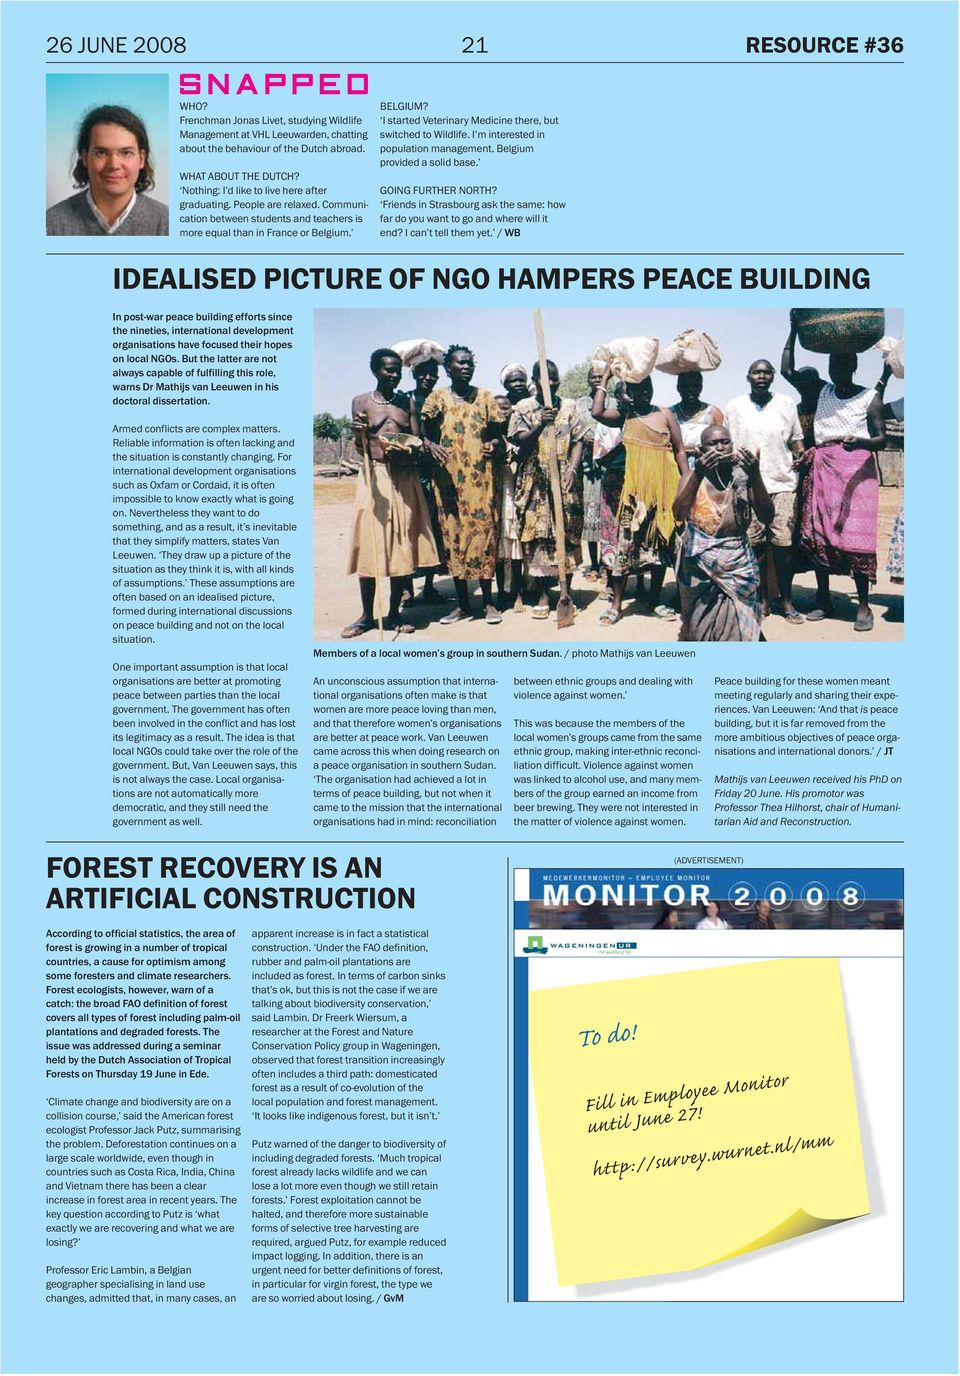 IDEALISED PICTURE OF NGO HAMPERS PEACE BUILDING In post-war peace building efforts since the nineties, international development organisations have focused their hopes on local NGOs.